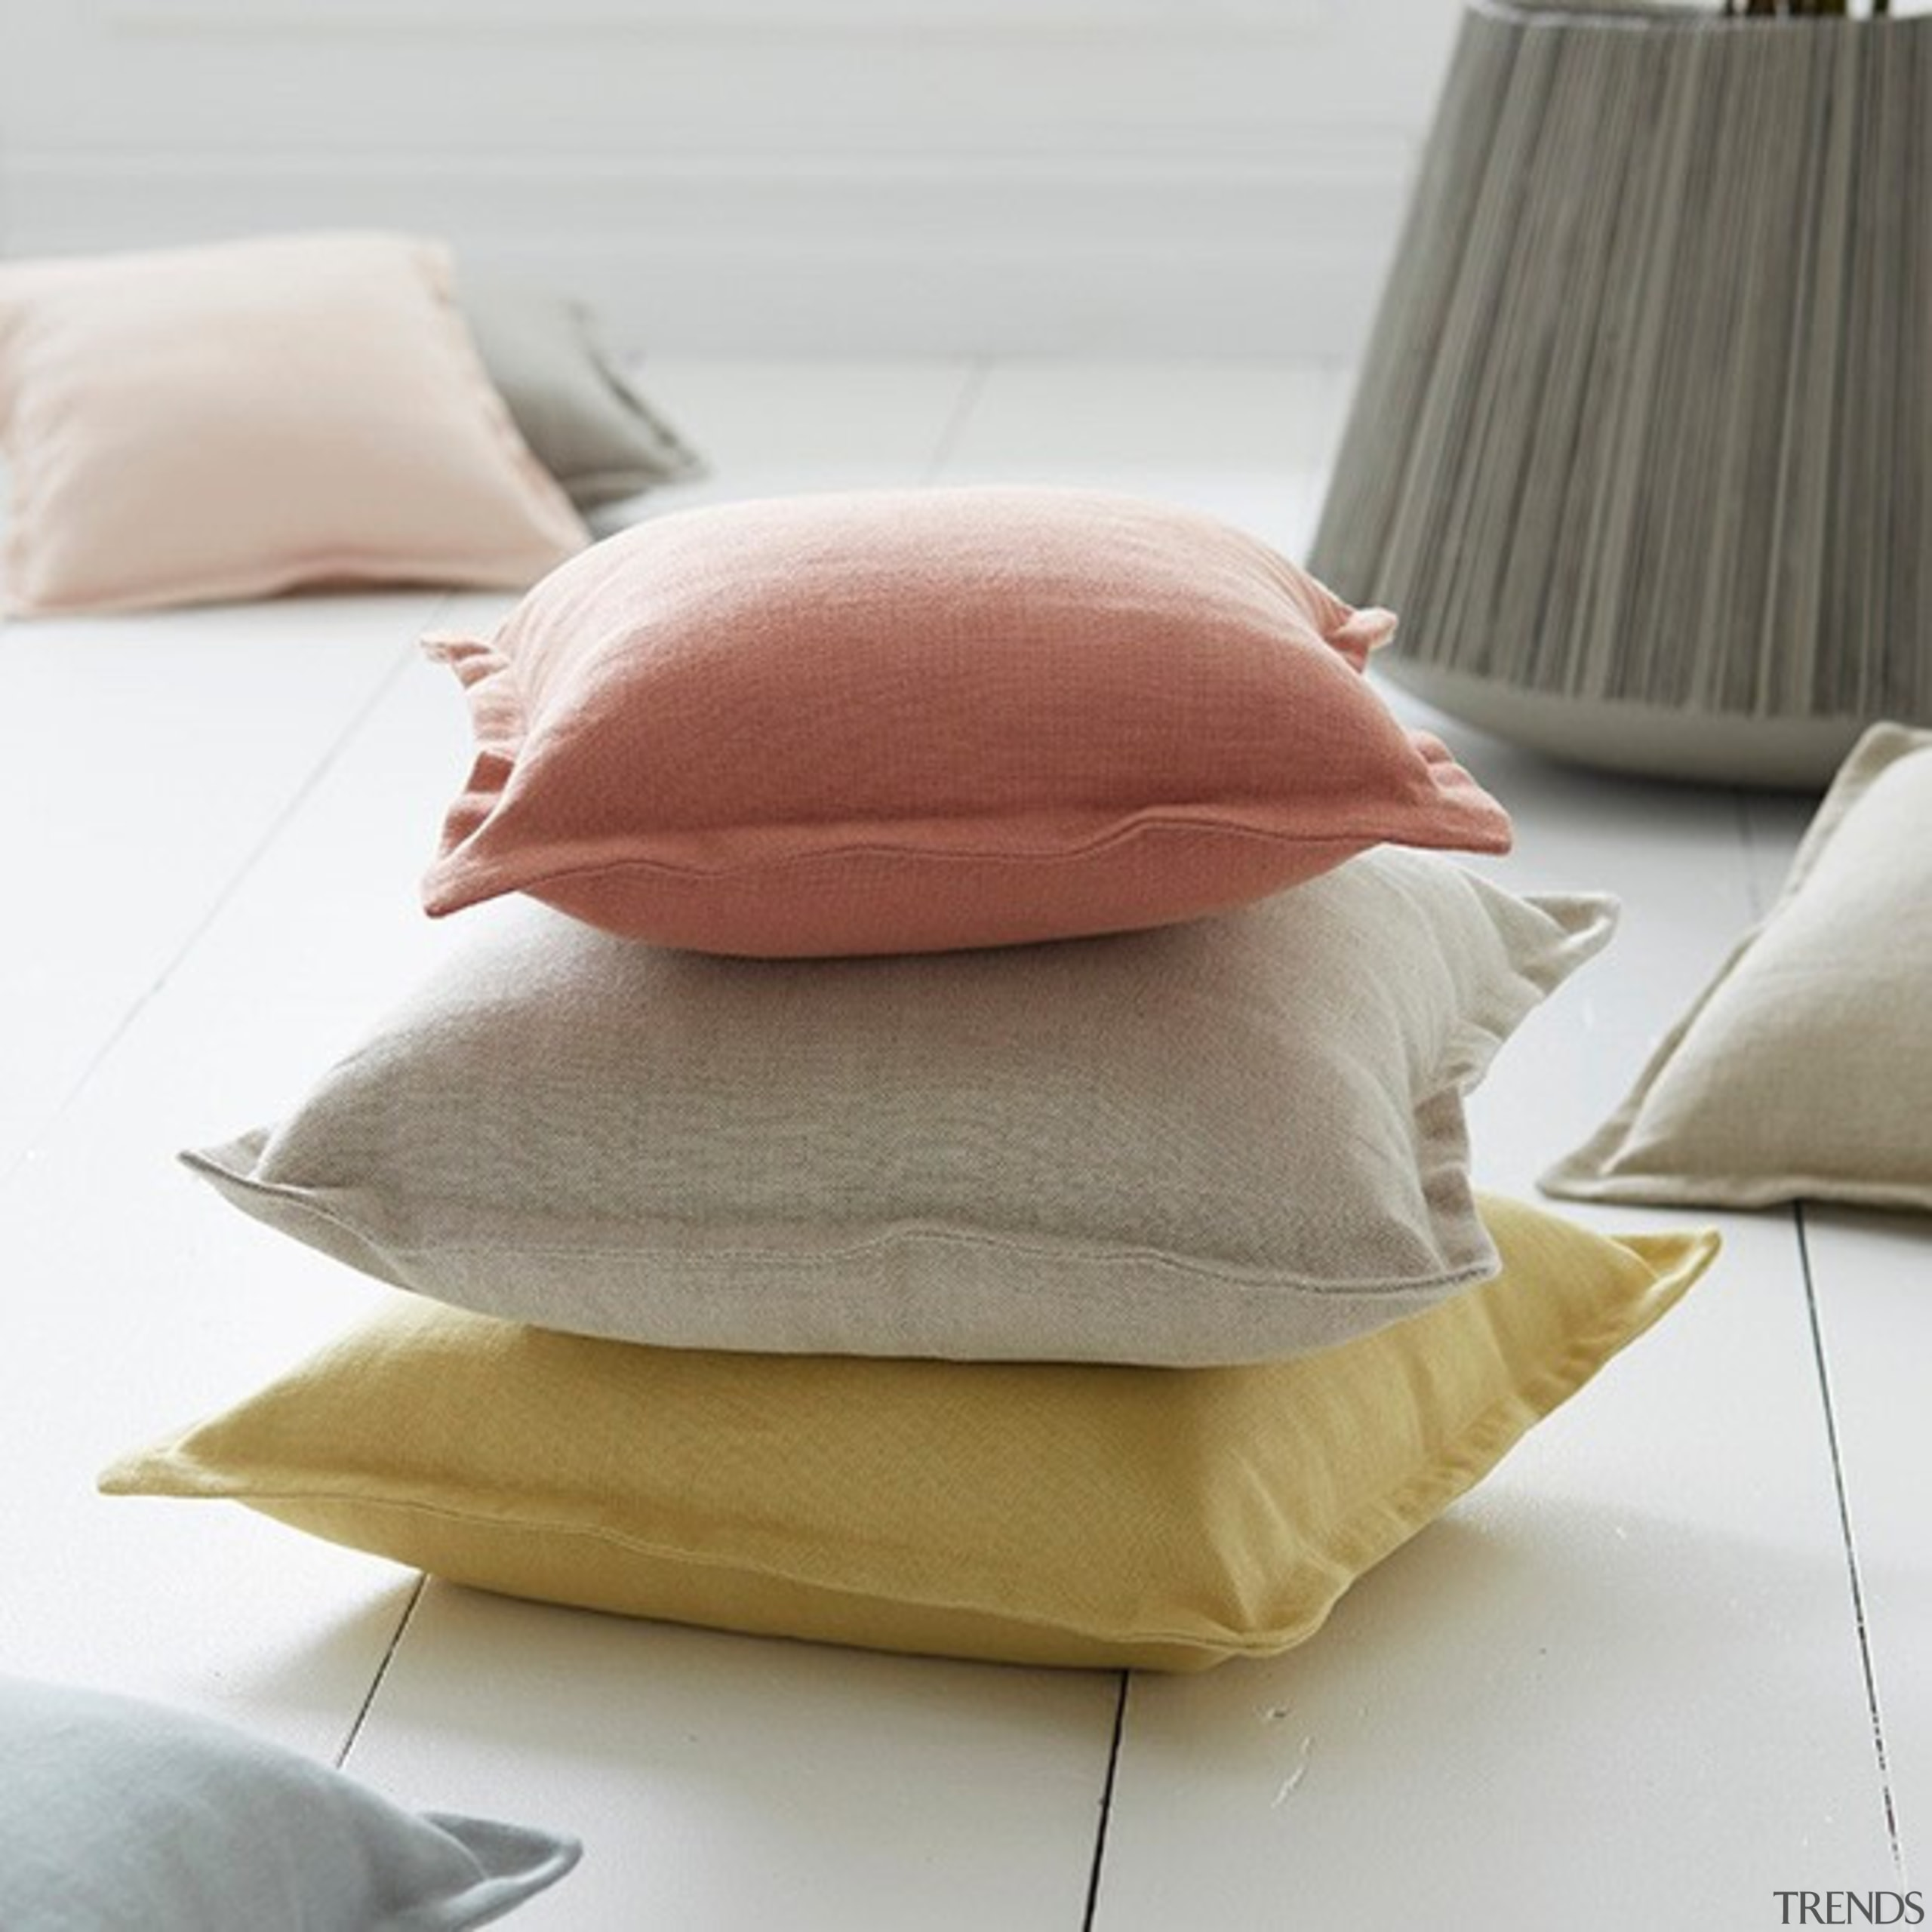 HAVEN 04 - cushion | pillow | white cushion, pillow, white, gray